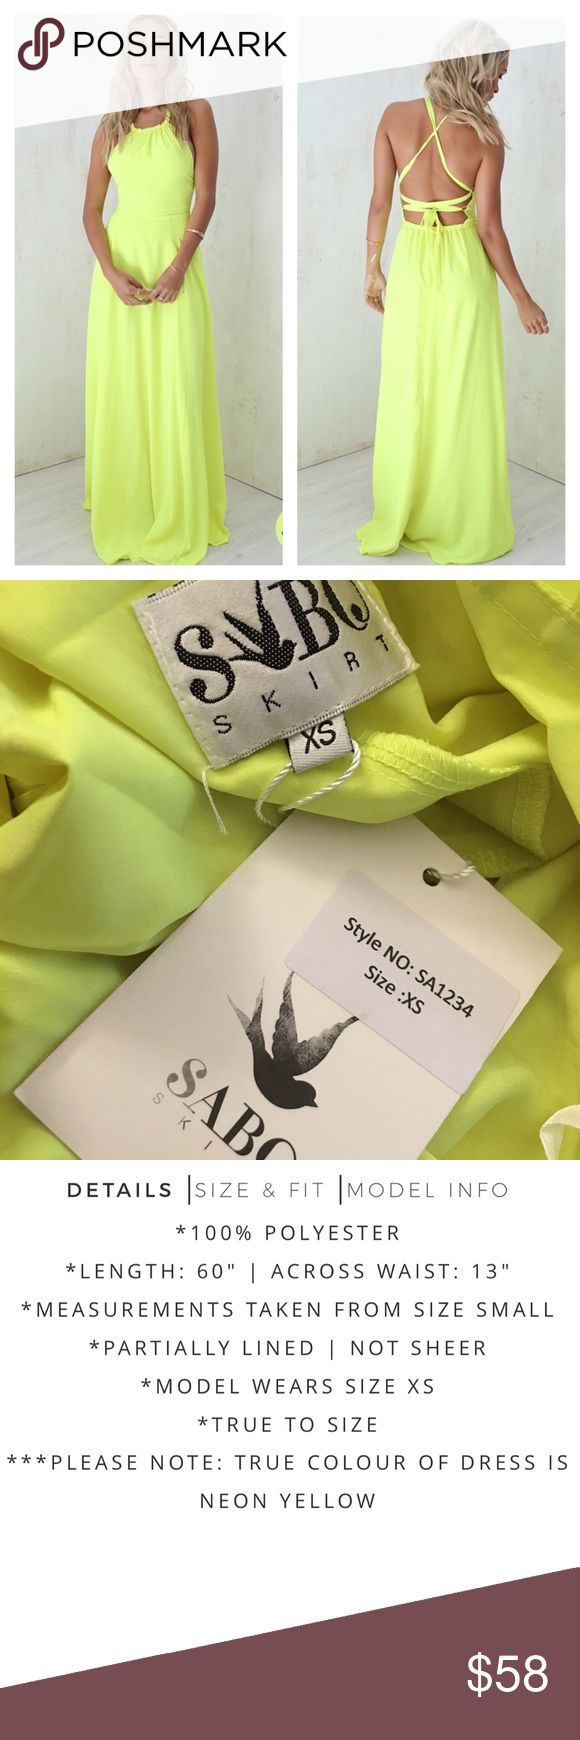 ⚡️FLASH SALE⚡️ Sabo Skirt Calipso Neon Maxi Dress Sabo Skirt Calipso Neon Maxi Dress. Size XS, US 2. Brand new with tags. Absolutely gorgeous gown! Please see pictures. Thank you for looking at my listing and feel free to ask questions :)!   ⭐️️Bundle and save⭐️10% off 2 items & 20% off 3+ items!   •Sorry no trades. •No modeling please. Sabo Skirt Dresses Maxi